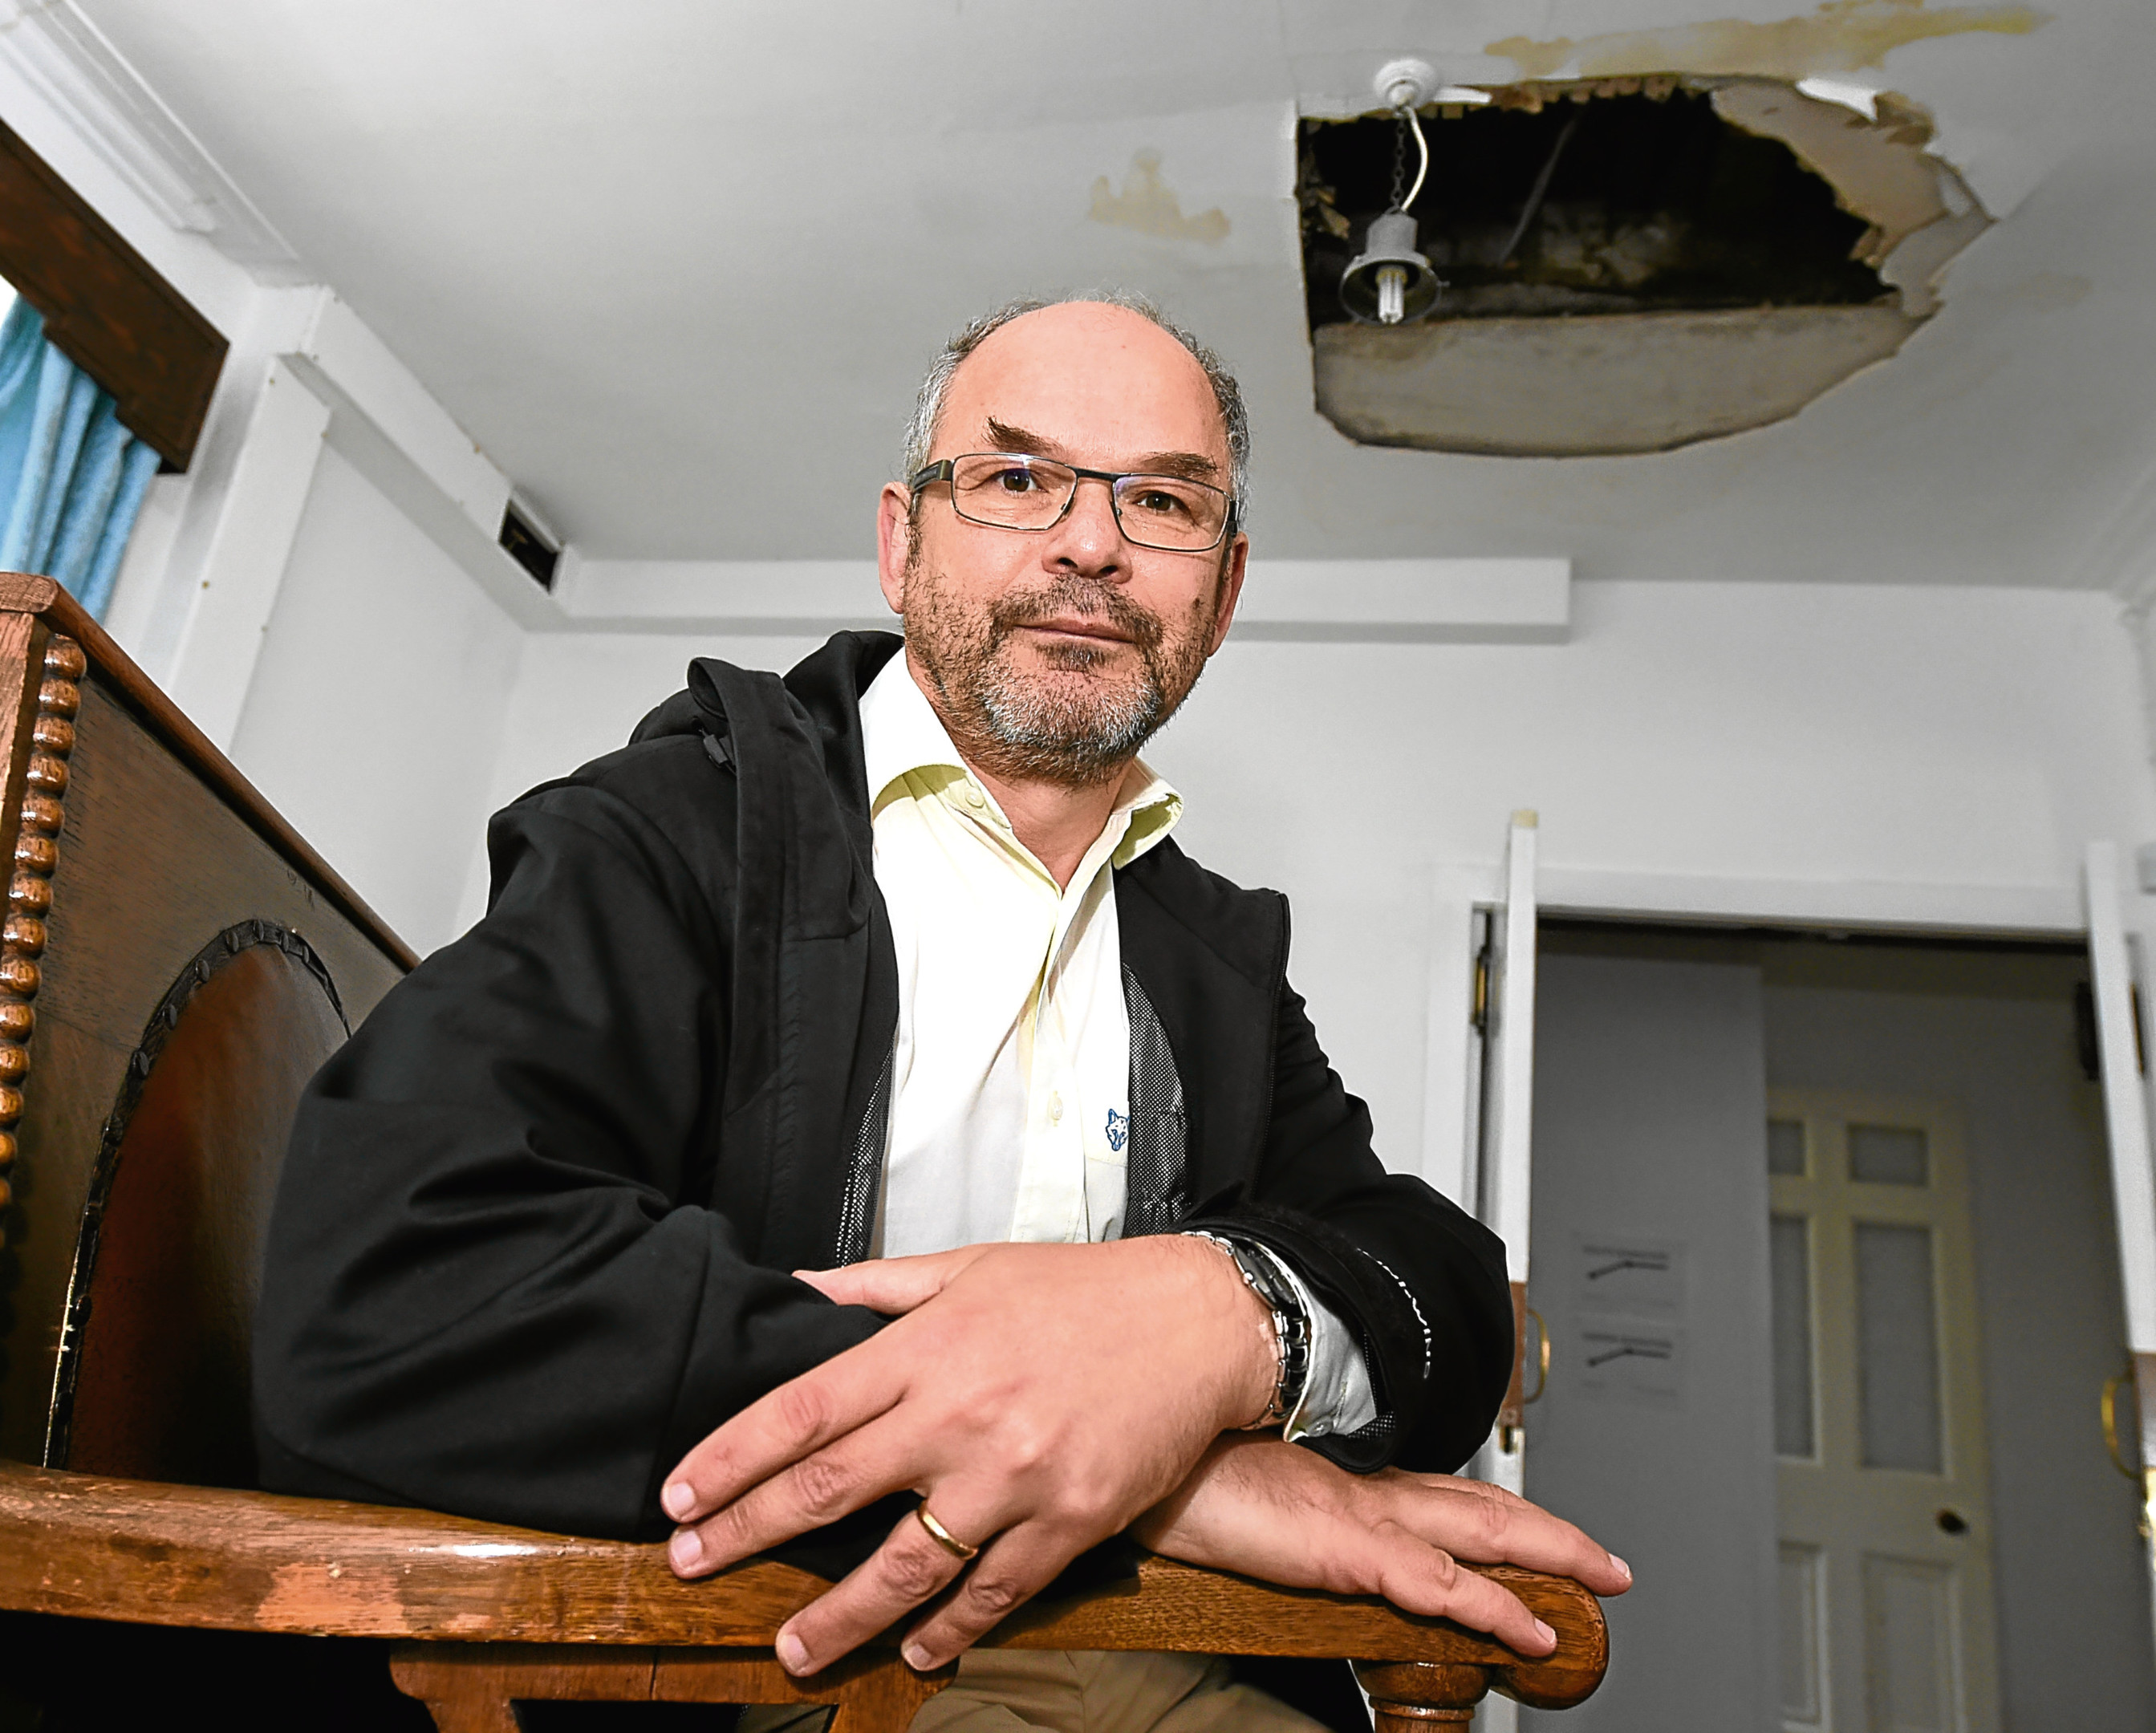 The washing machine flood caused havoc in the busiest month of the Jewish calendar. In the picture is Mark Taylor, president of Aberdeen Synagogue, Dee Street, Aberdeen.